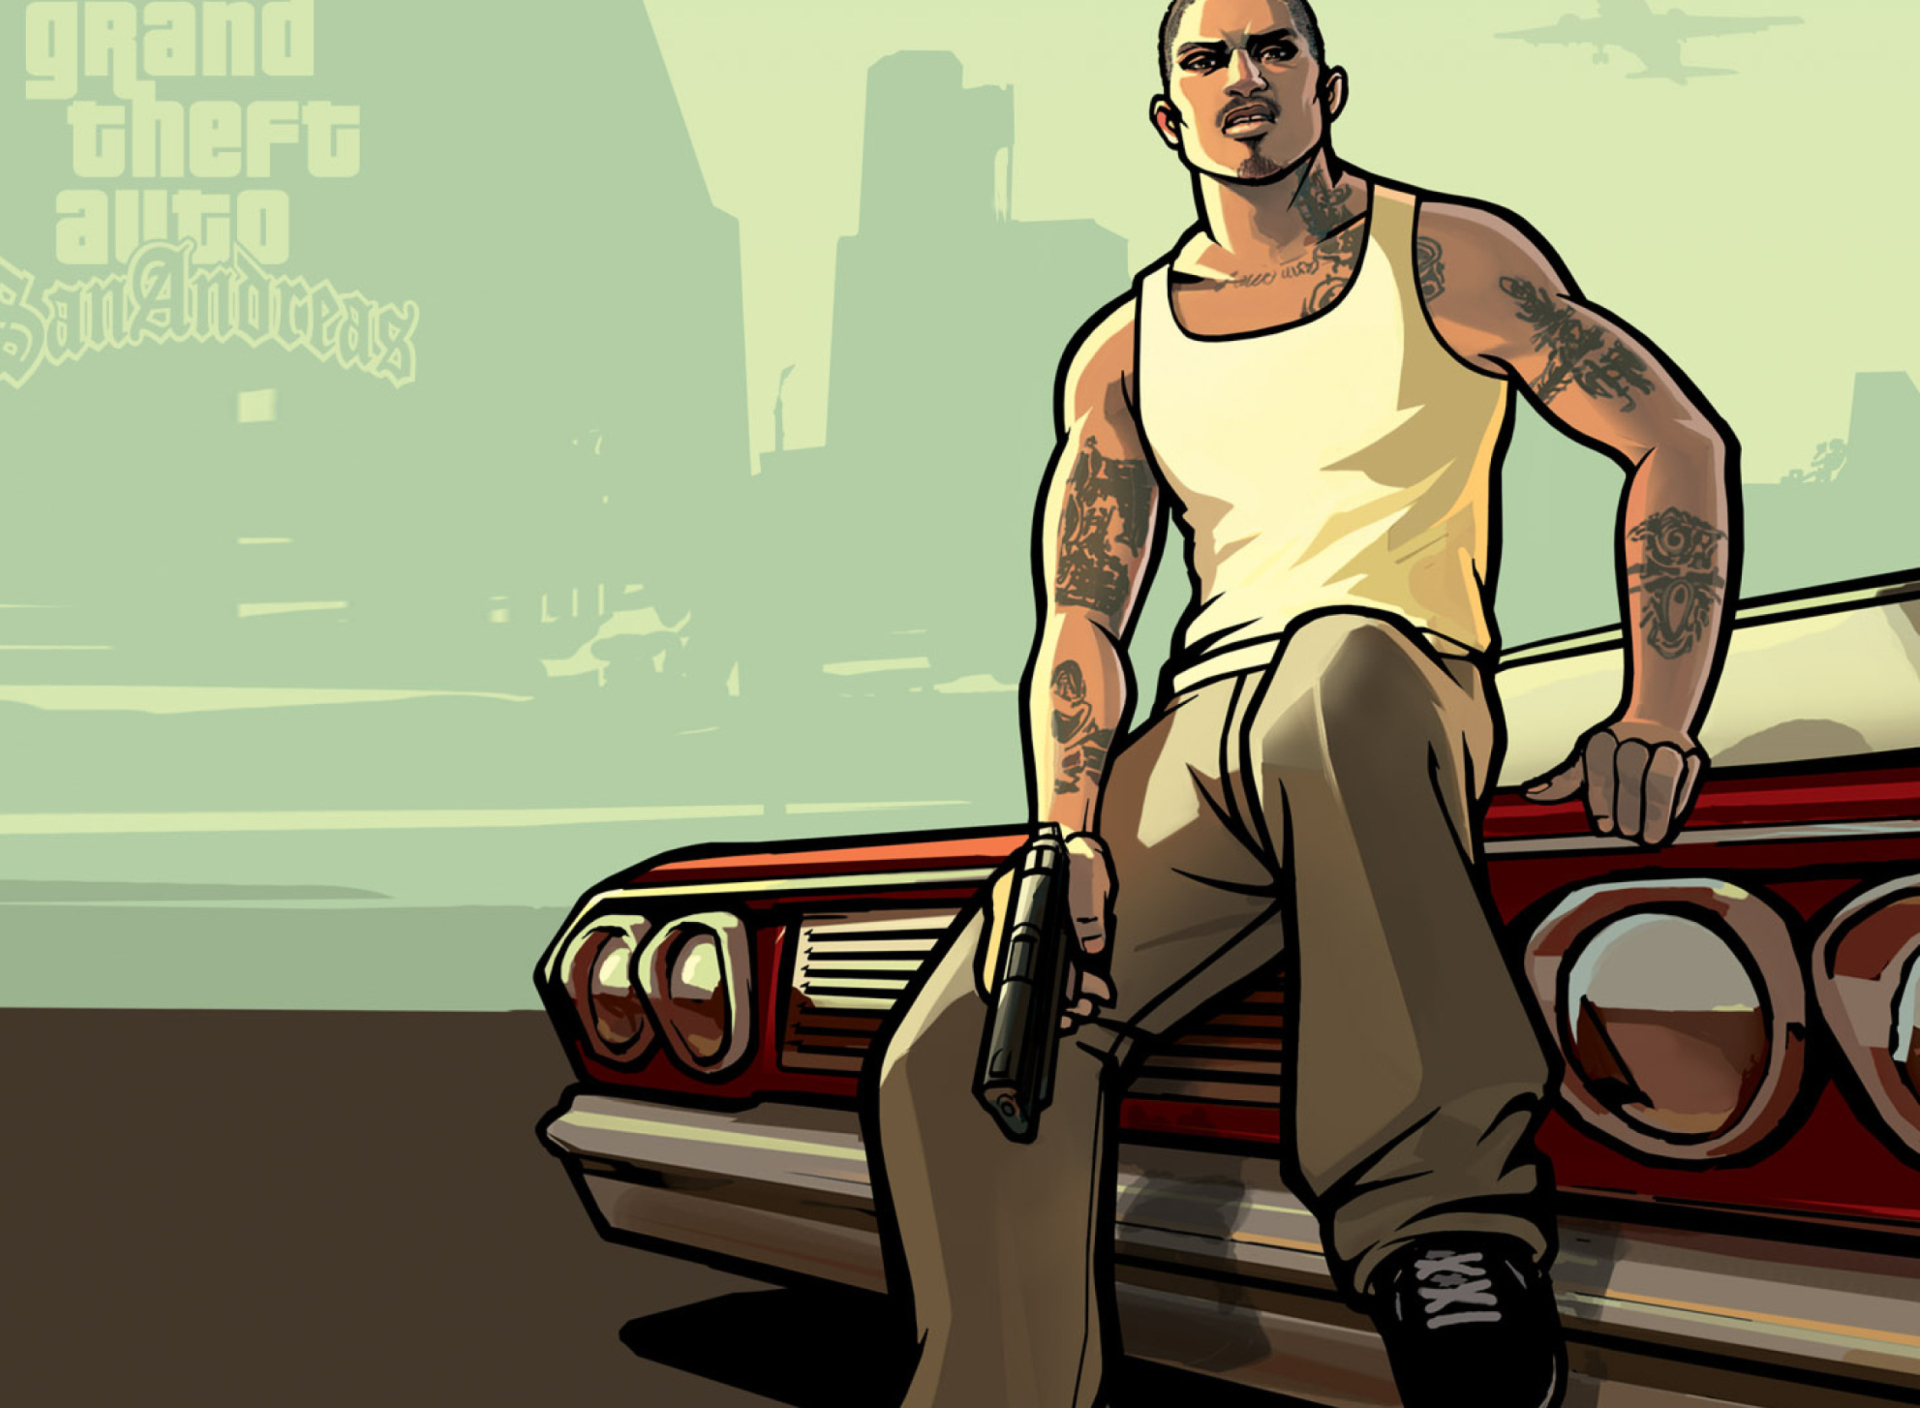 Gta San Andreas wallpaper 1920x1408